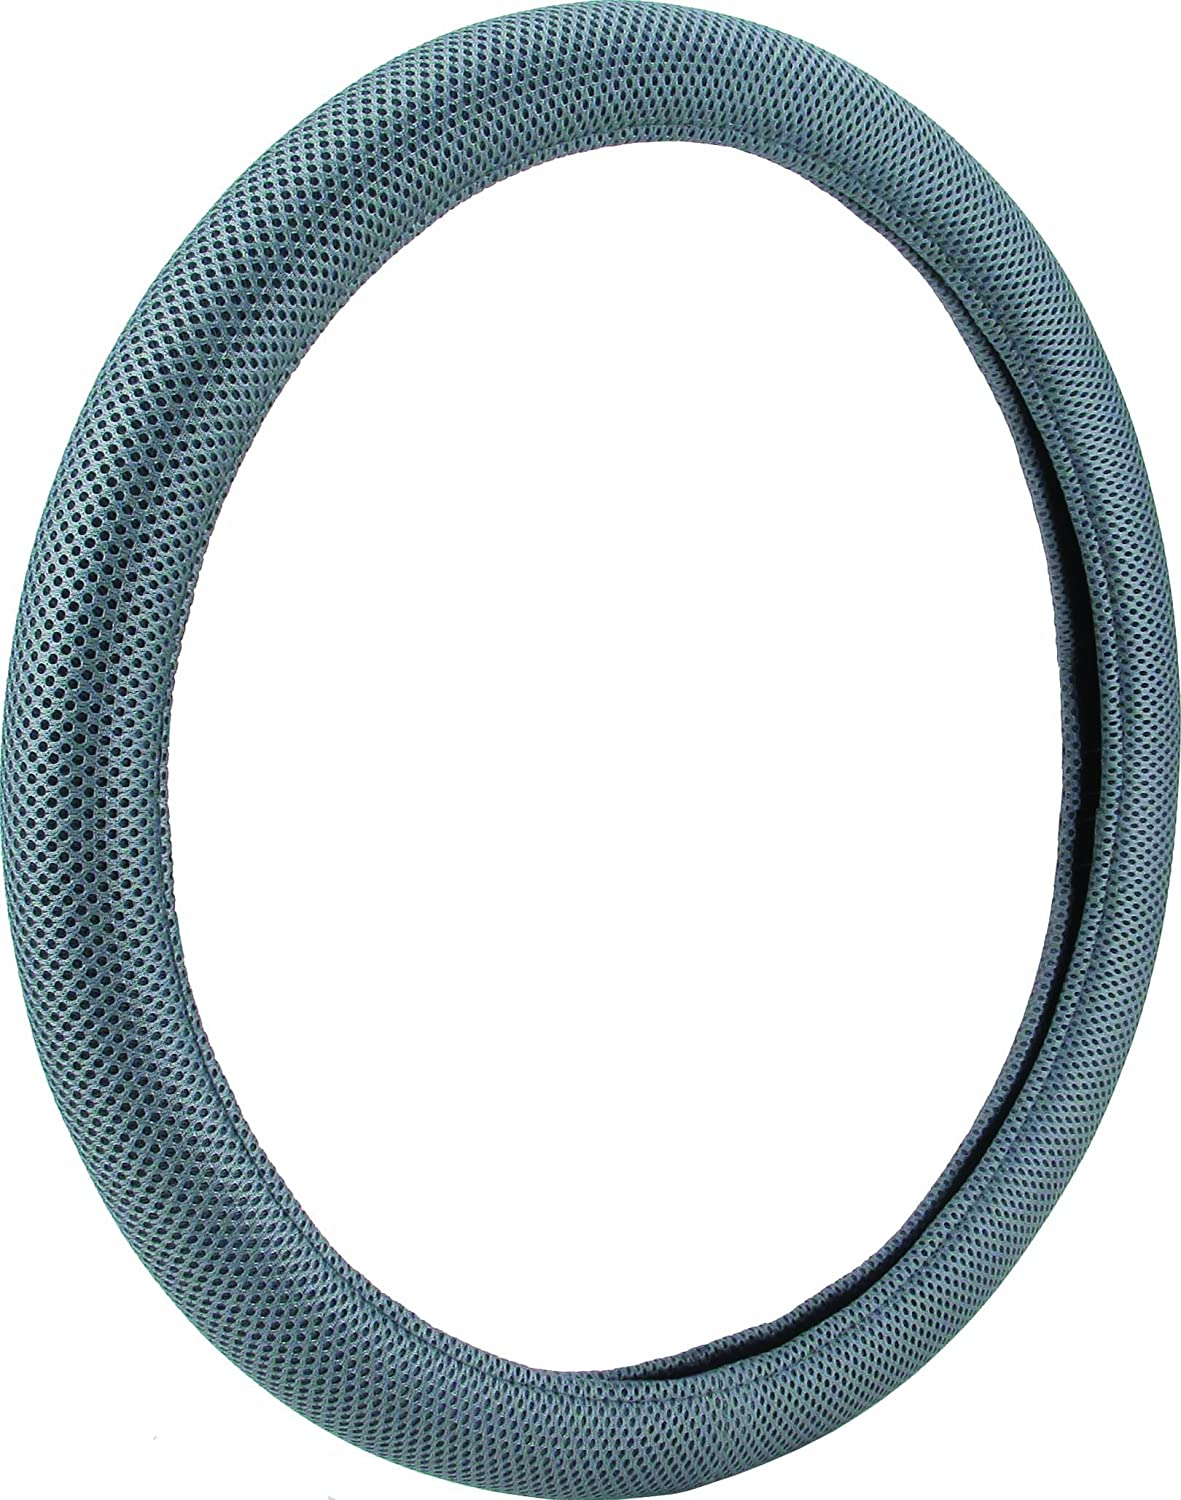 Bell Automotive 22-1-52823-1 Universal Smooth Grips Mesh Steering Wheel Cover Gray